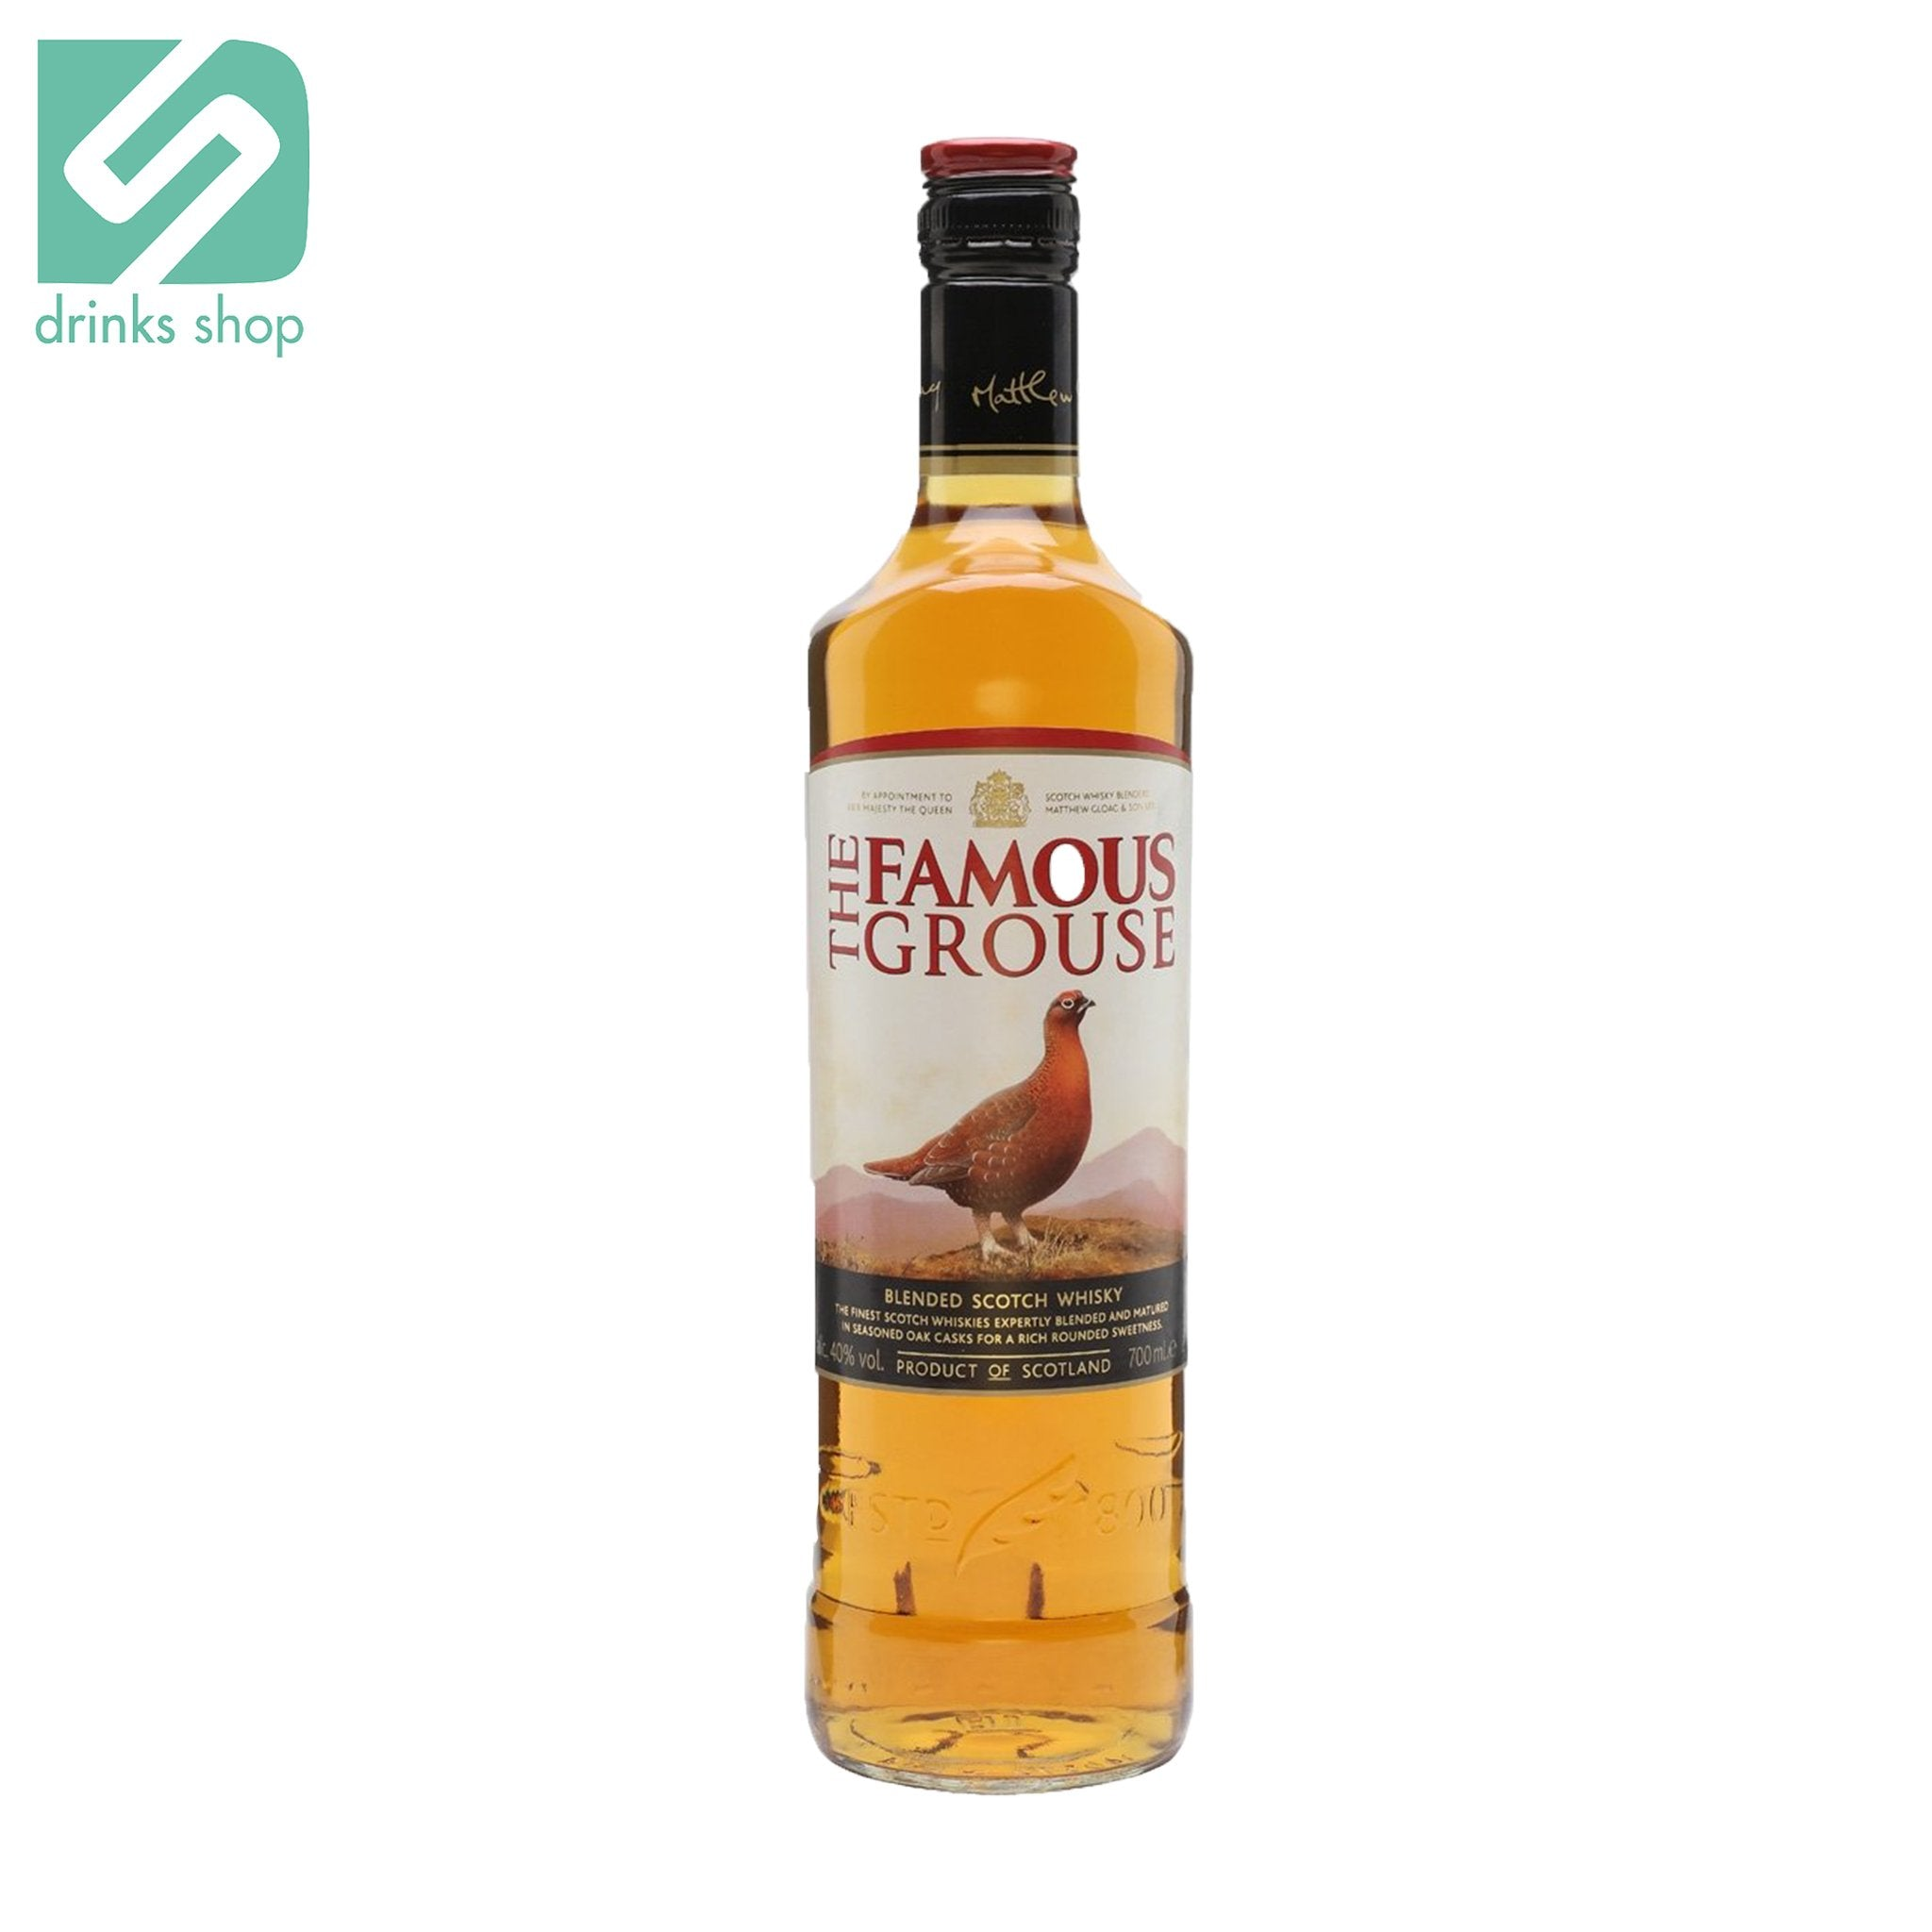 The Famous Grouse Finest Blended Scotch Whisky 70cl, Whisky - Image 2